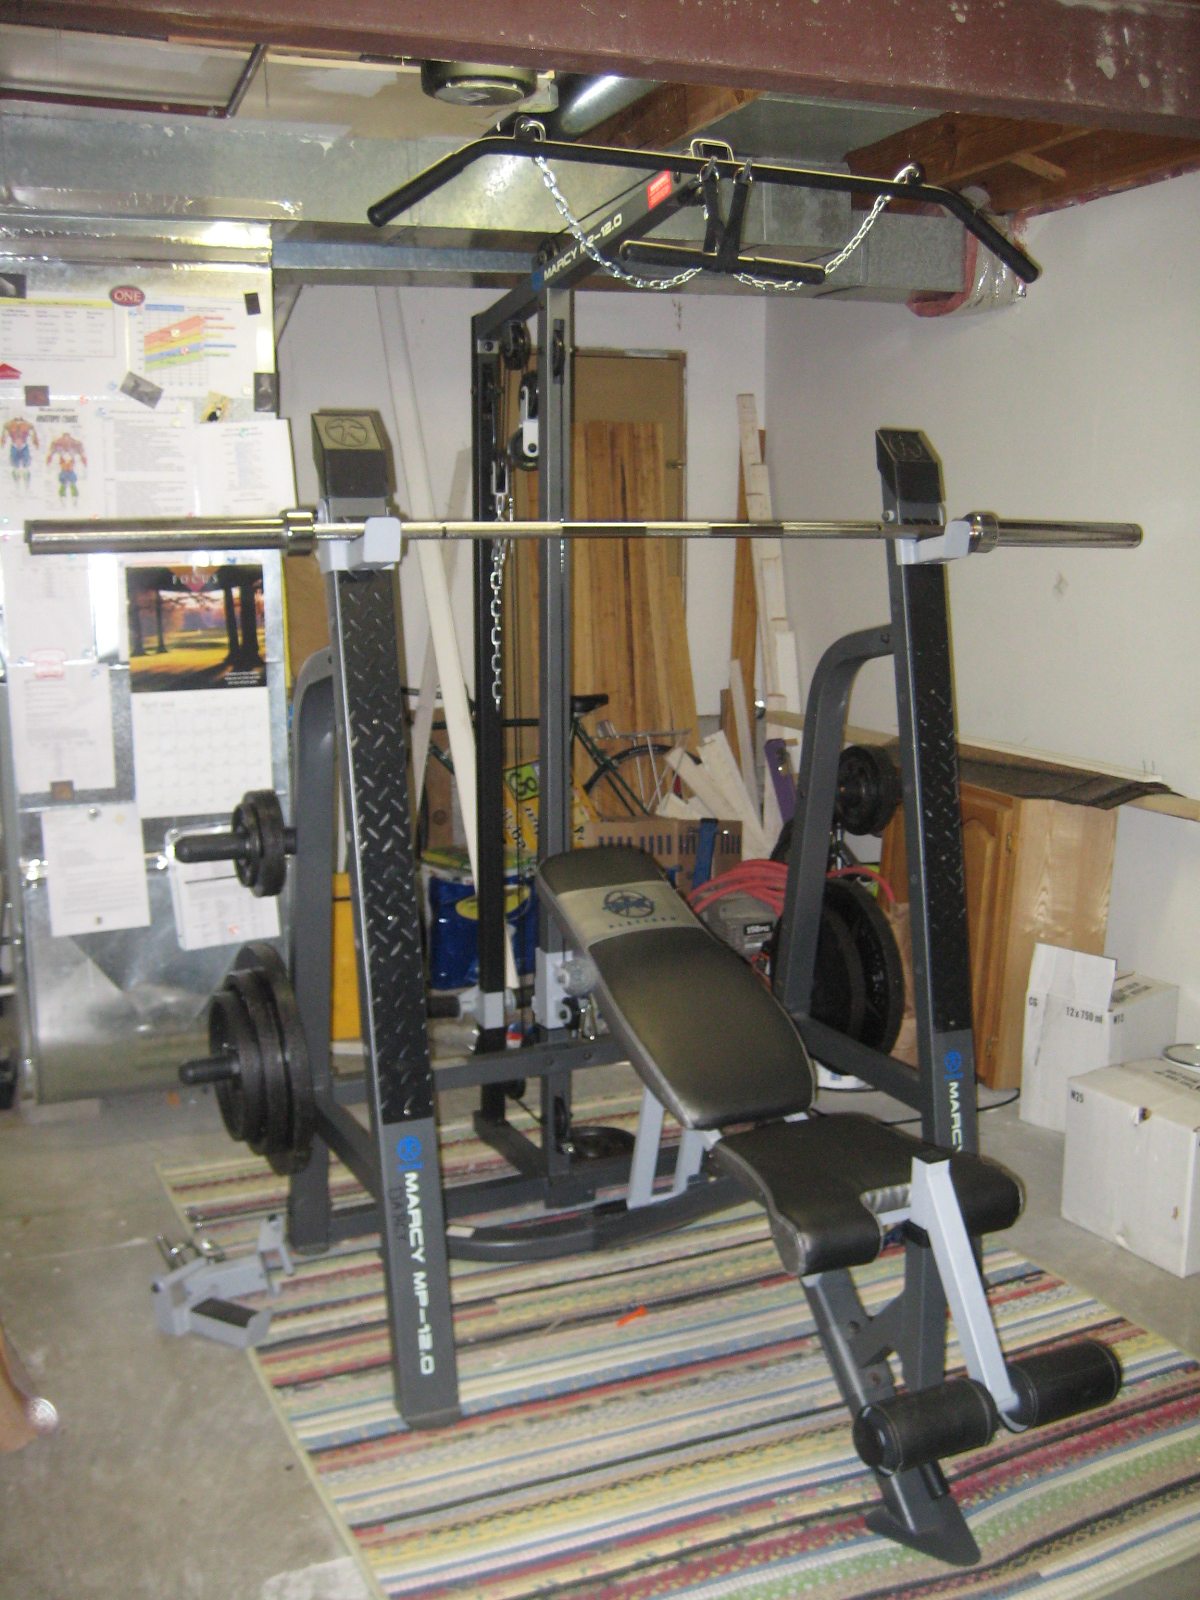 Cheap Weight Sets with Bench | Craigslist Weight Bench | Craigslist Los Angeles Exercise Equipment